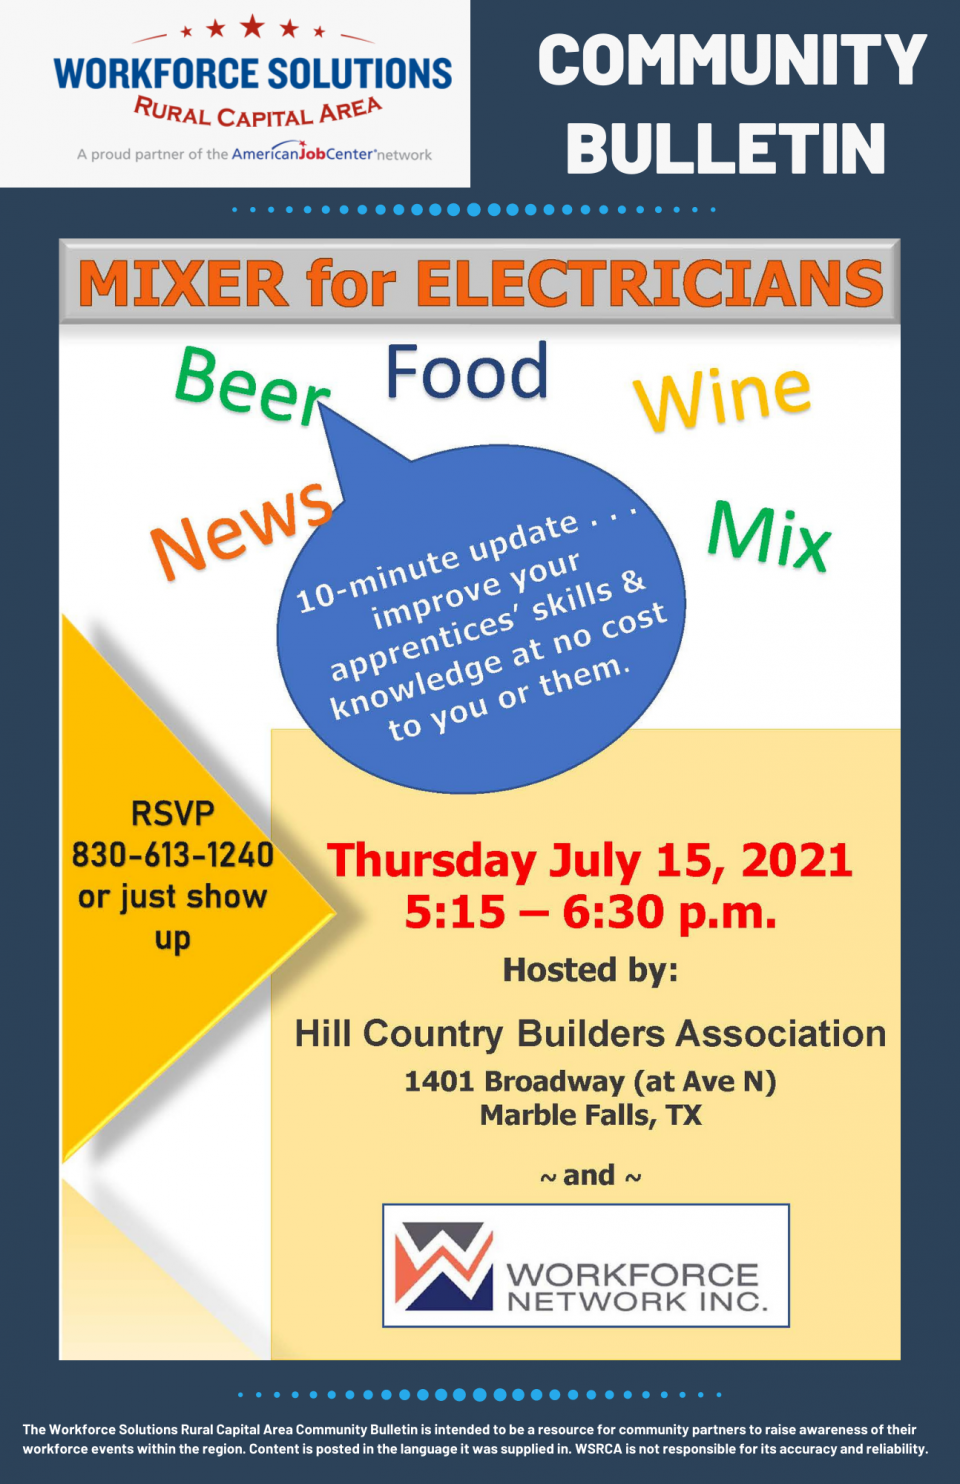 Electrical Apprentice Program Coming to the Highland Lakes: Attend the Mixer for Electricians on July 15 to Learn More About Building a Workforce Pipeline for your Business through Apprenticeship